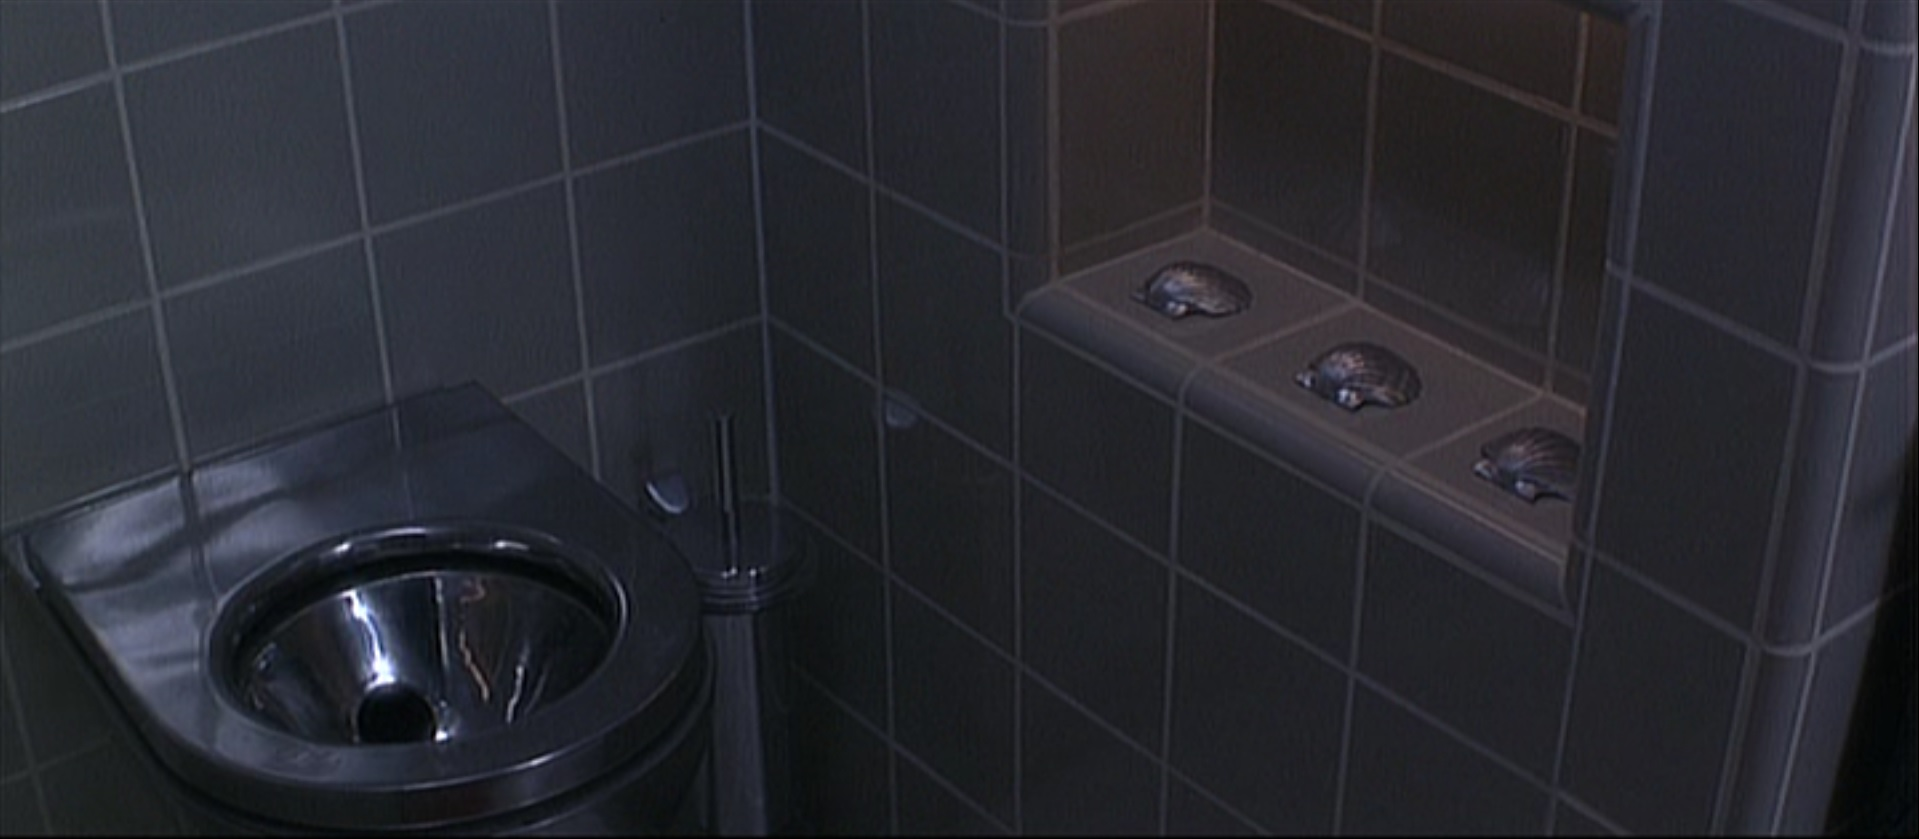 DEMOLITION MAN: Seriously though, HOW DO YOU USE THESE THINGS?!